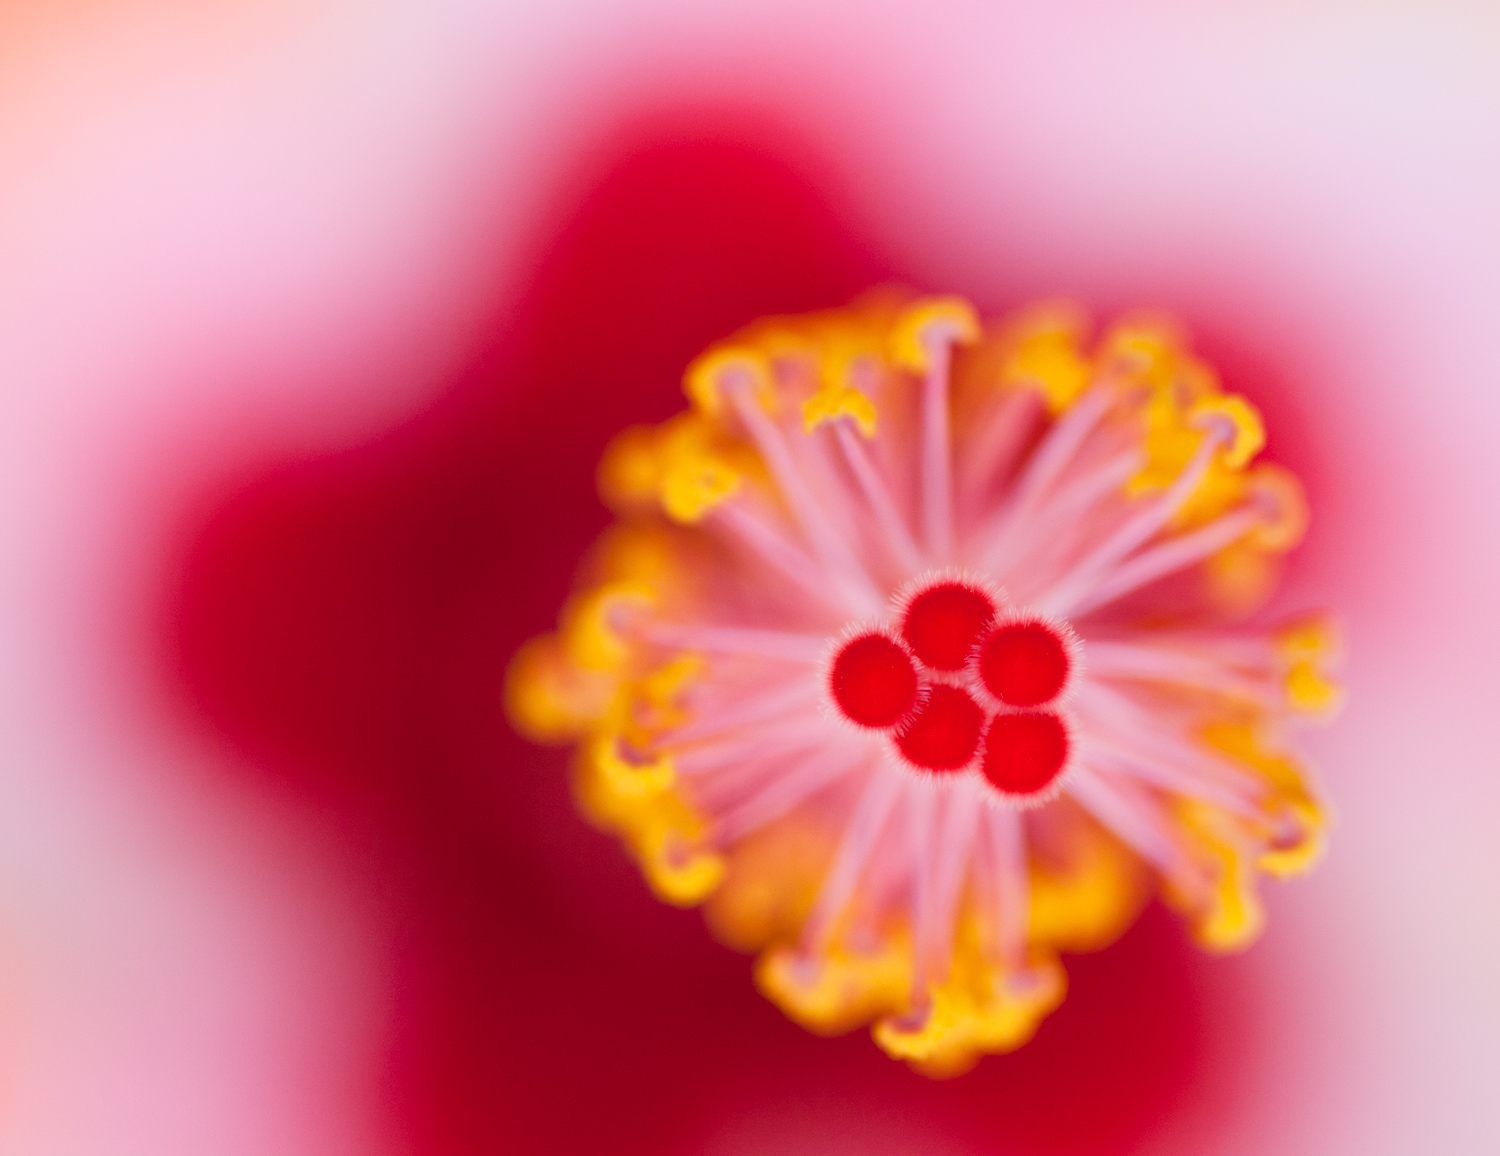 Ethereal macro shot of a red plant